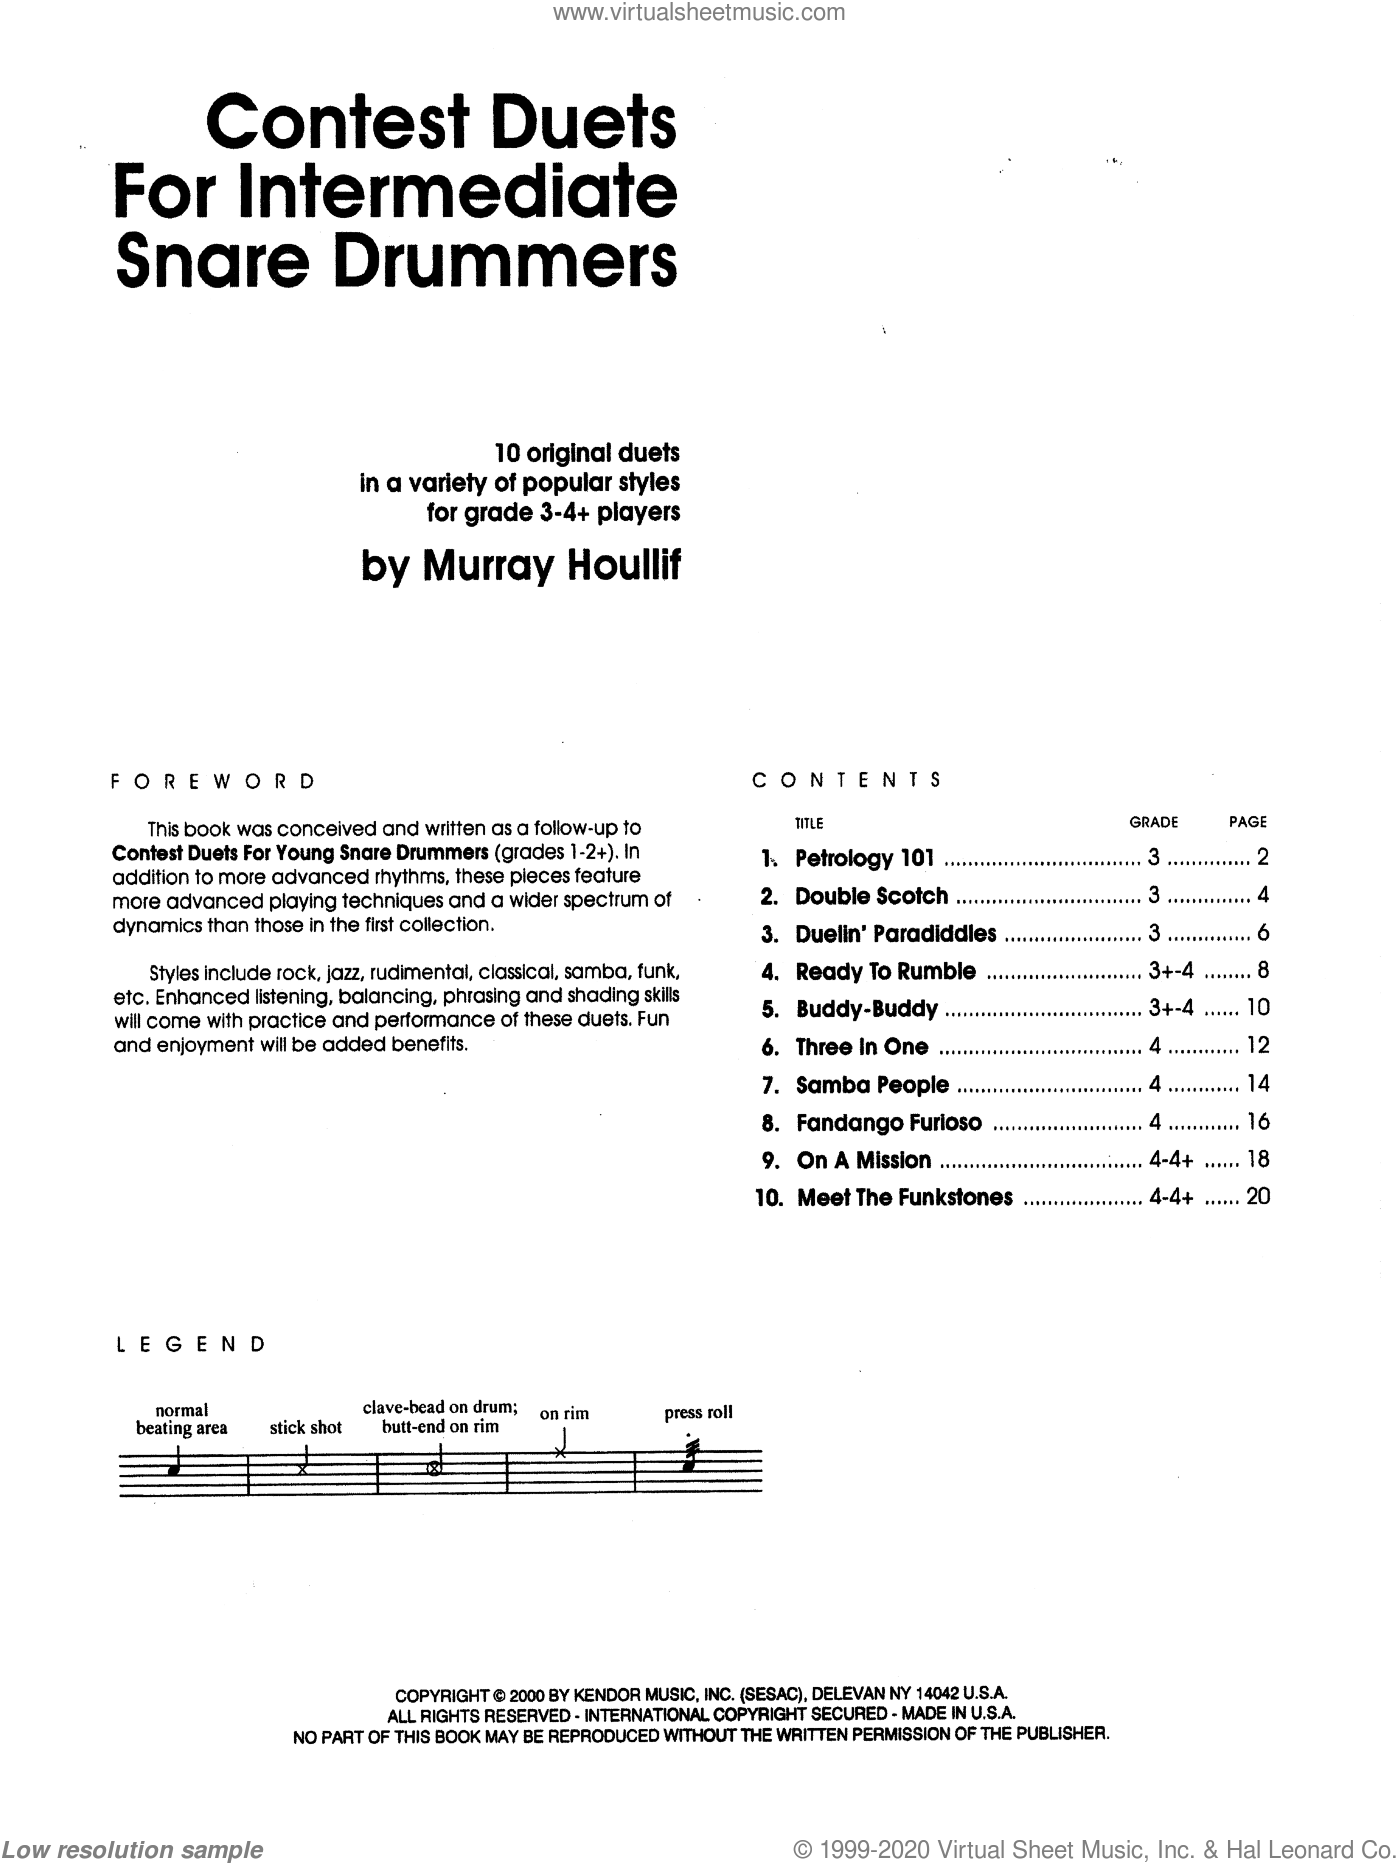 Contest Duets For The Intermediate Snare Drummers sheet music for percussions by Houllif, classical score, intermediate skill level